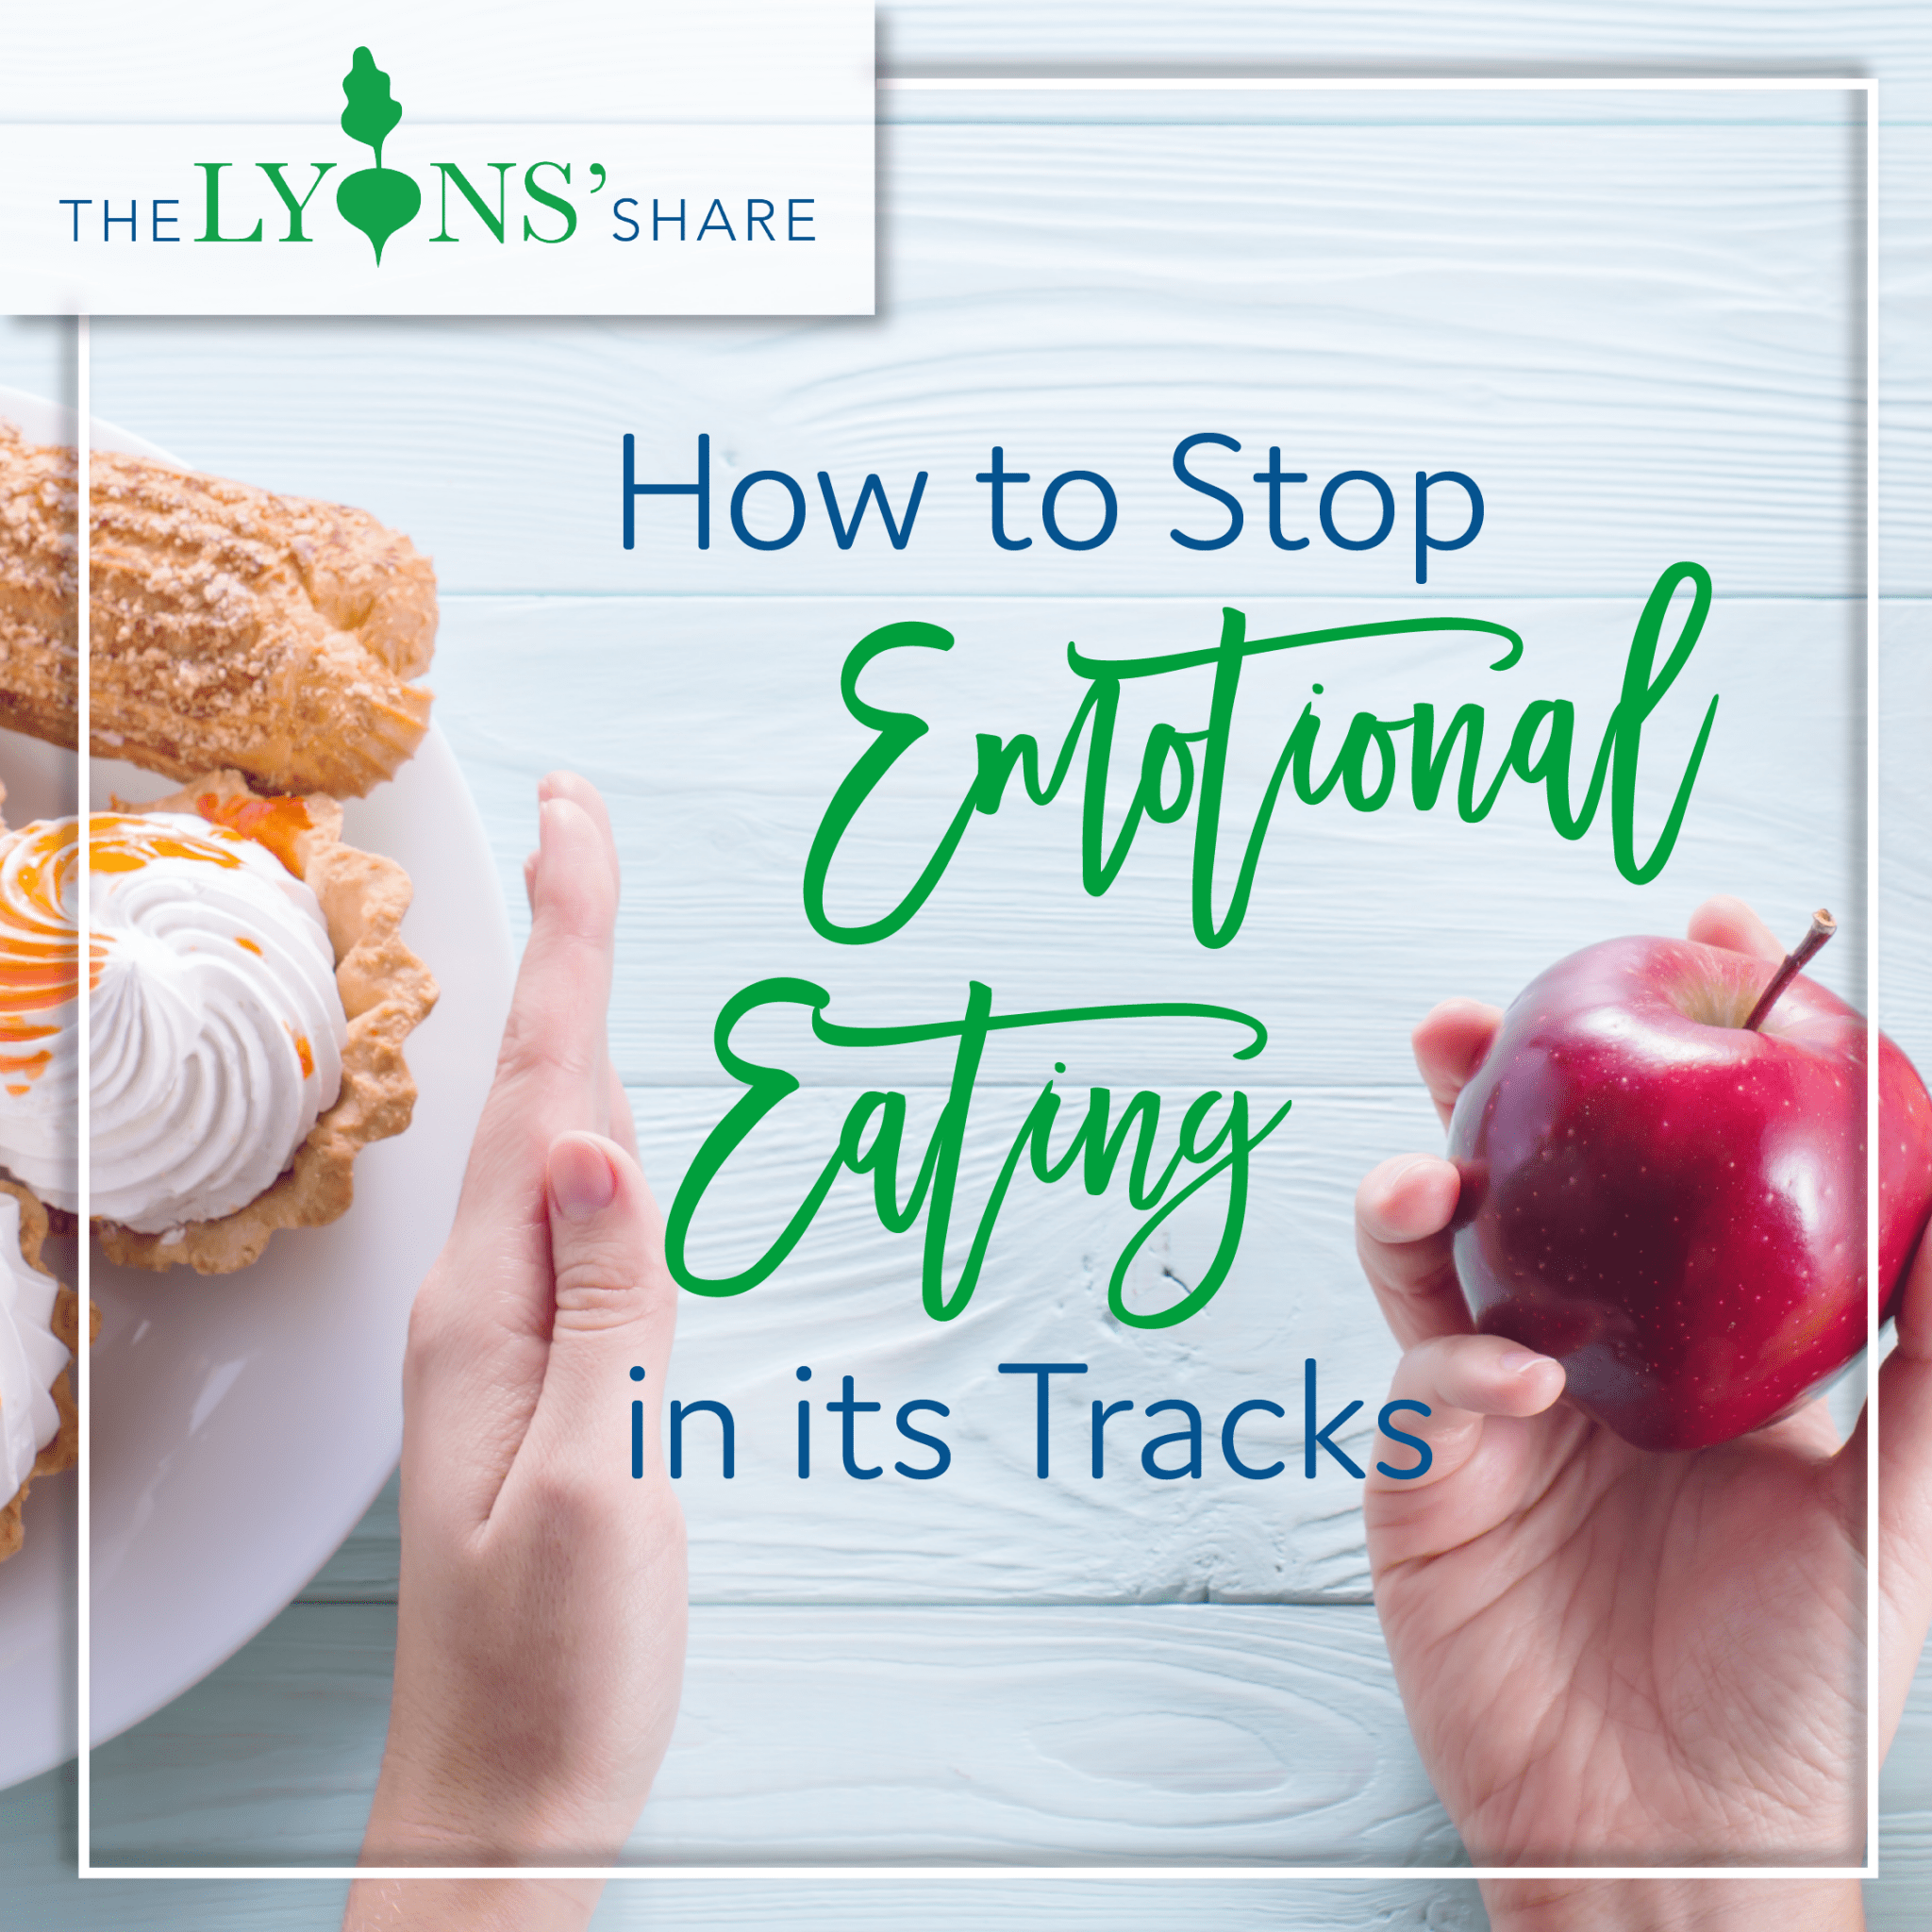 How to Stop Emotional Eating in its Tracks (My 7 Top Tips)